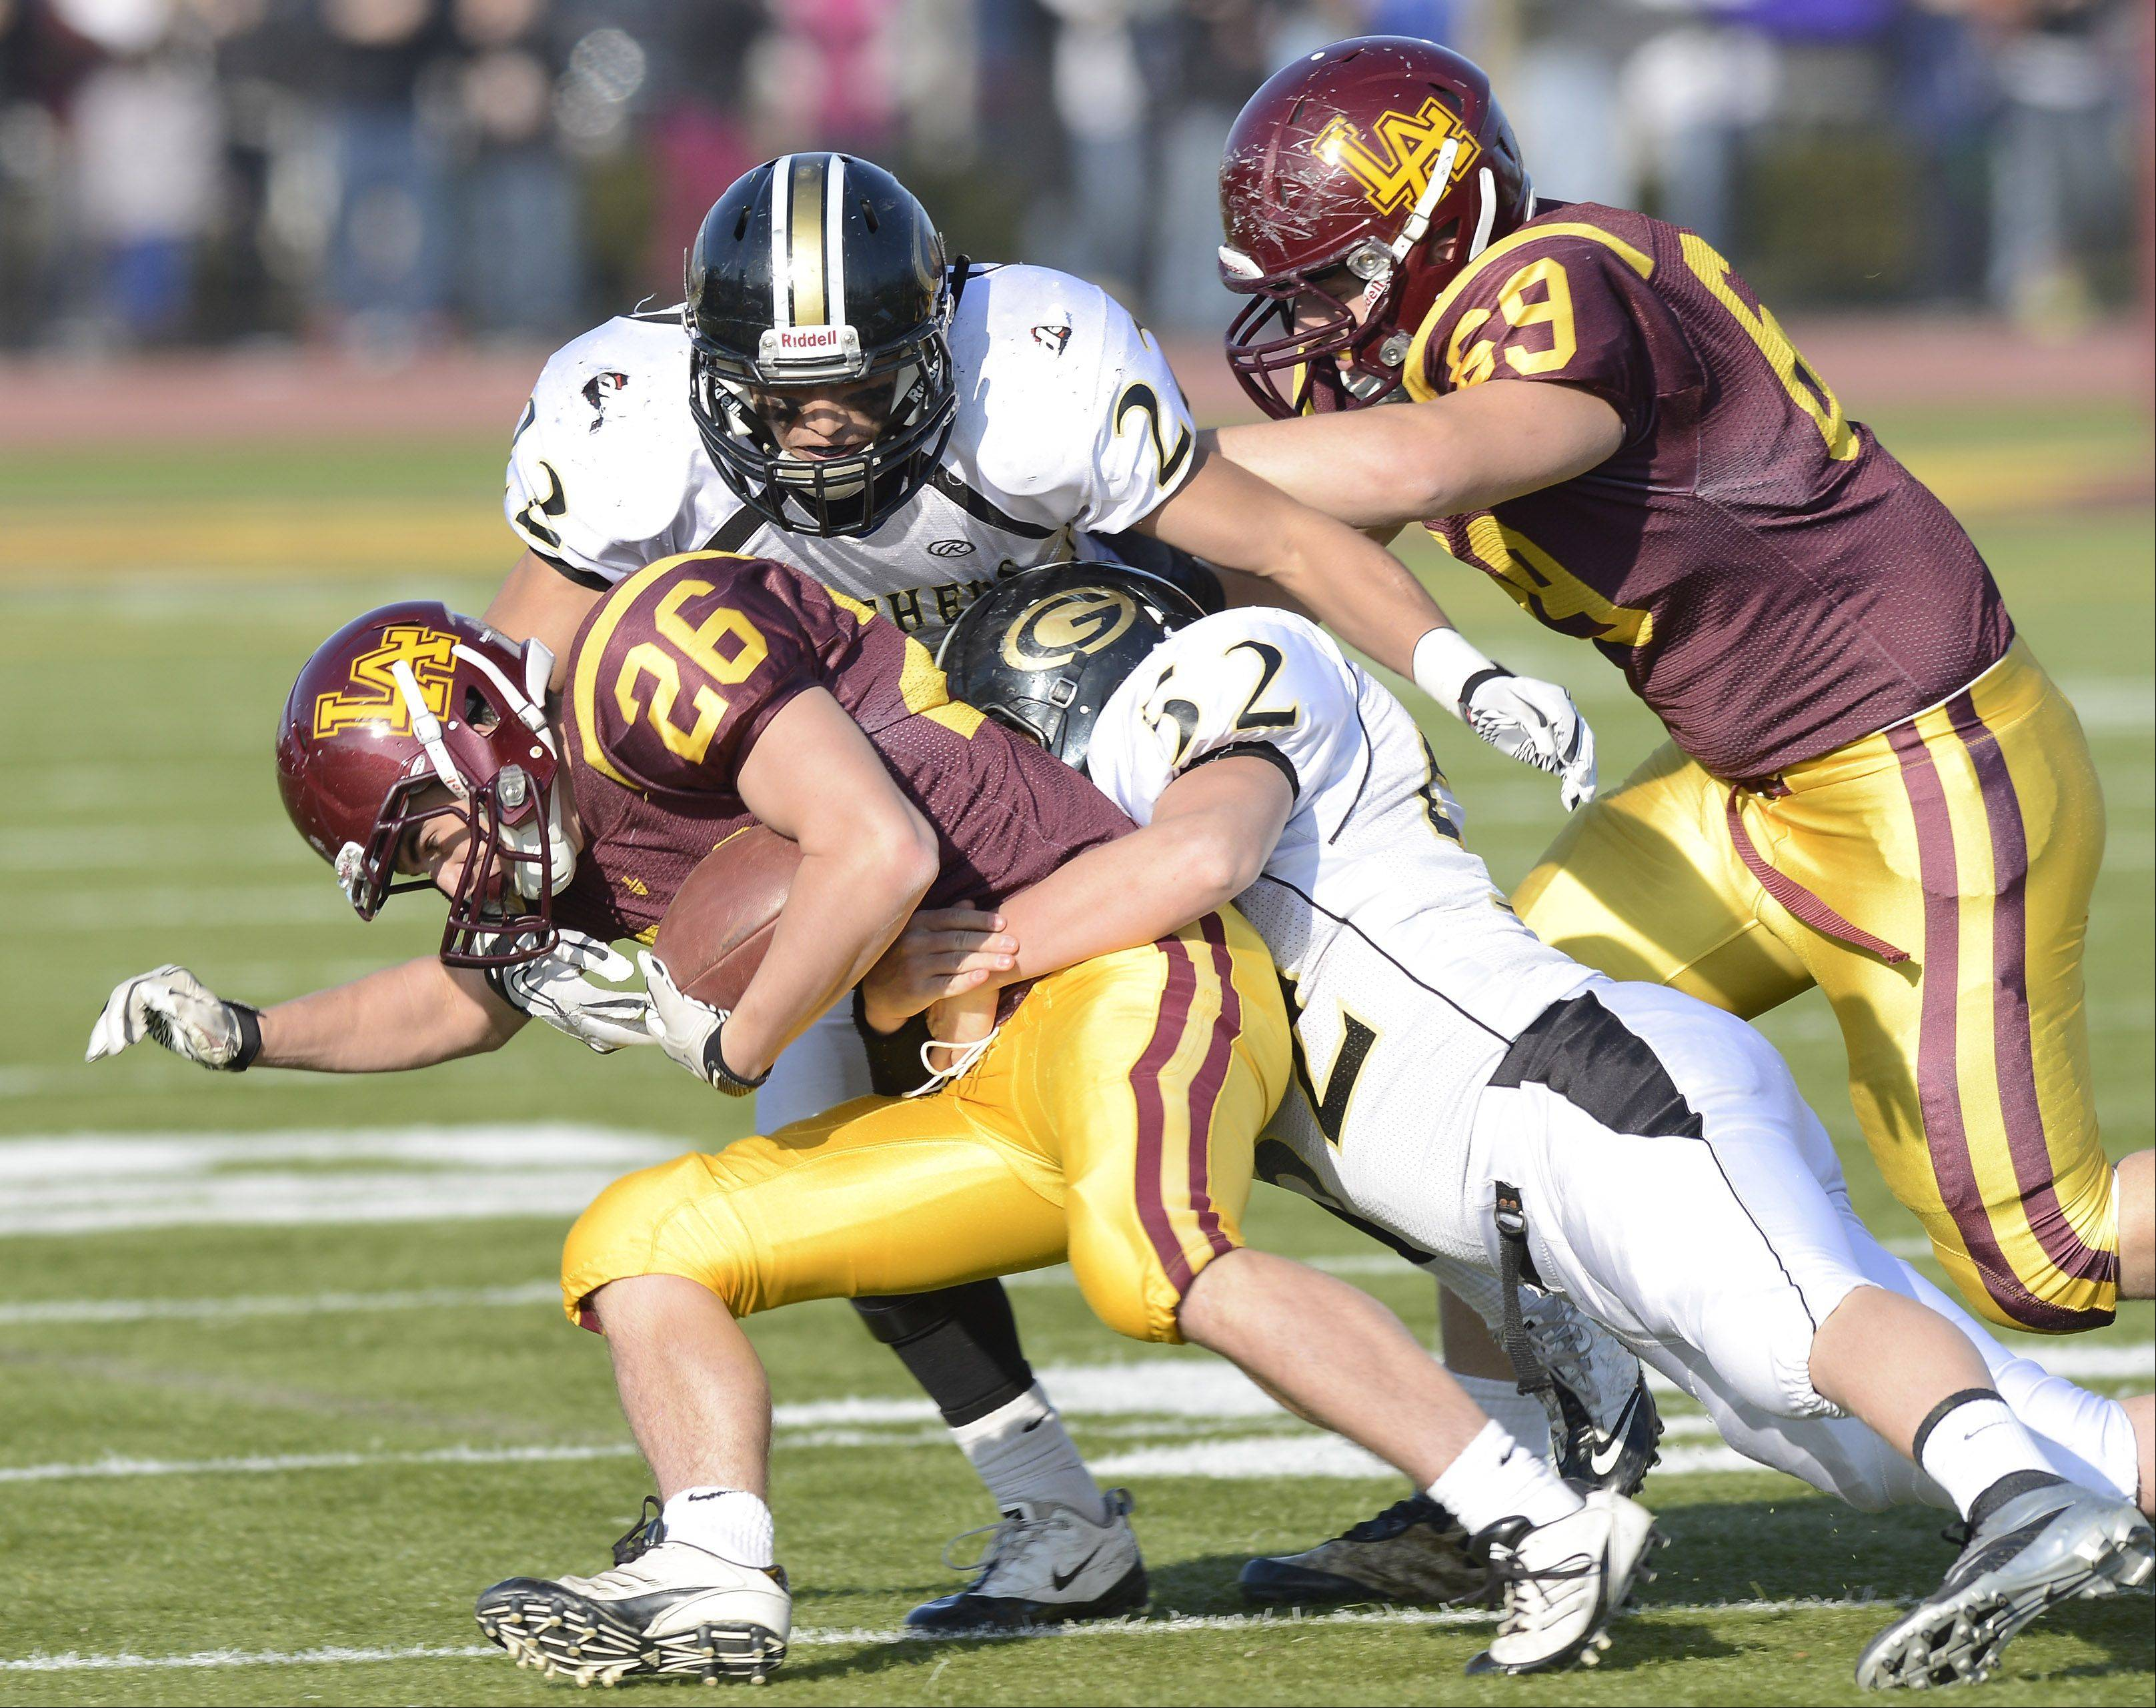 Loyola Academy's Johnny Burns gets tackled by Glenbard North's Mario Rodriguez, top, and Thomas Hood during Saturday's class 8A football playoff semifinal.